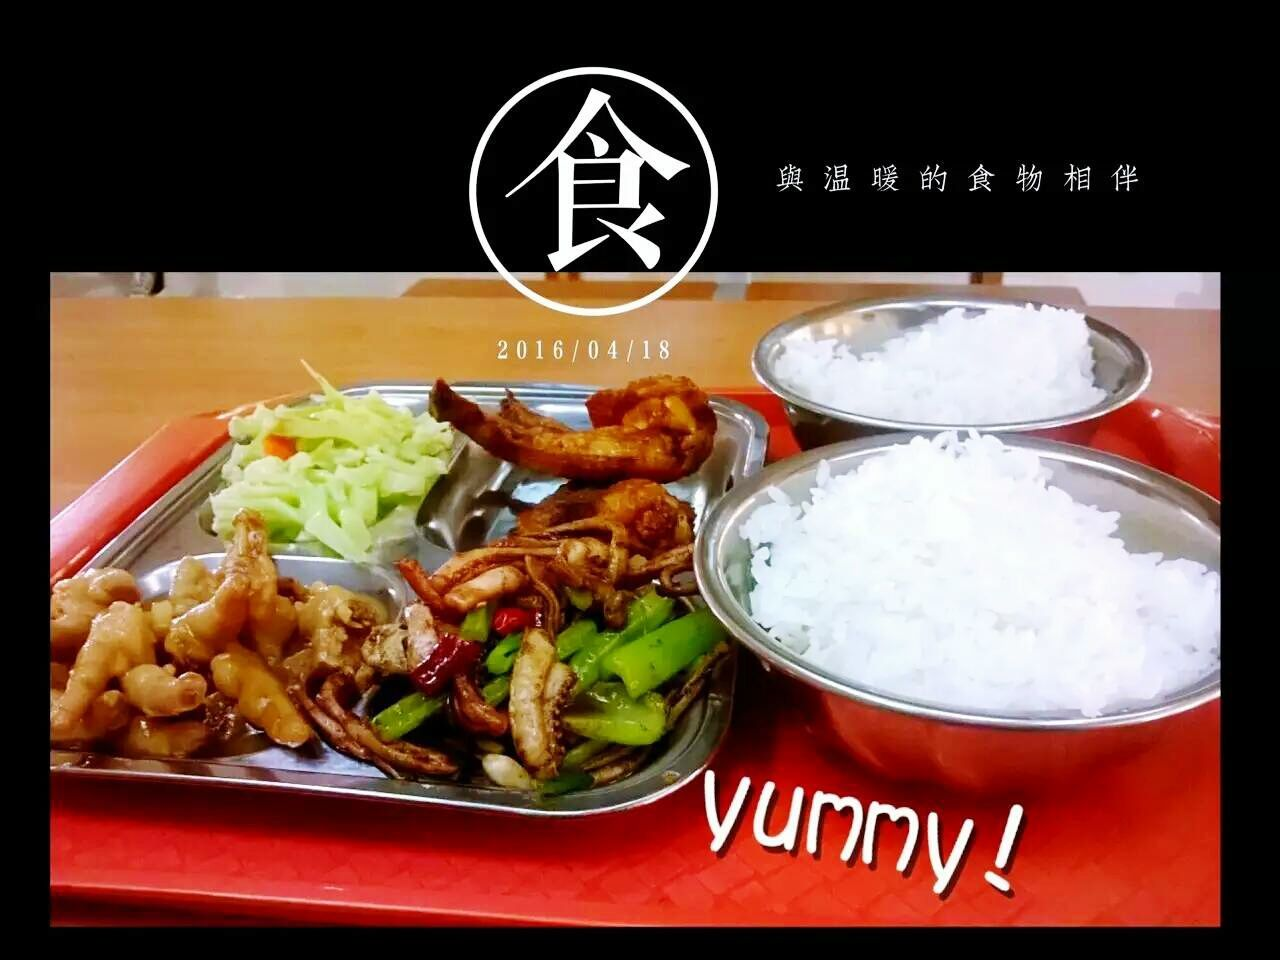 food and drink, food, freshness, text, ready-to-eat, rice - food staple, chopsticks, healthy eating, no people, table, meal, plate, indoors, close-up, day